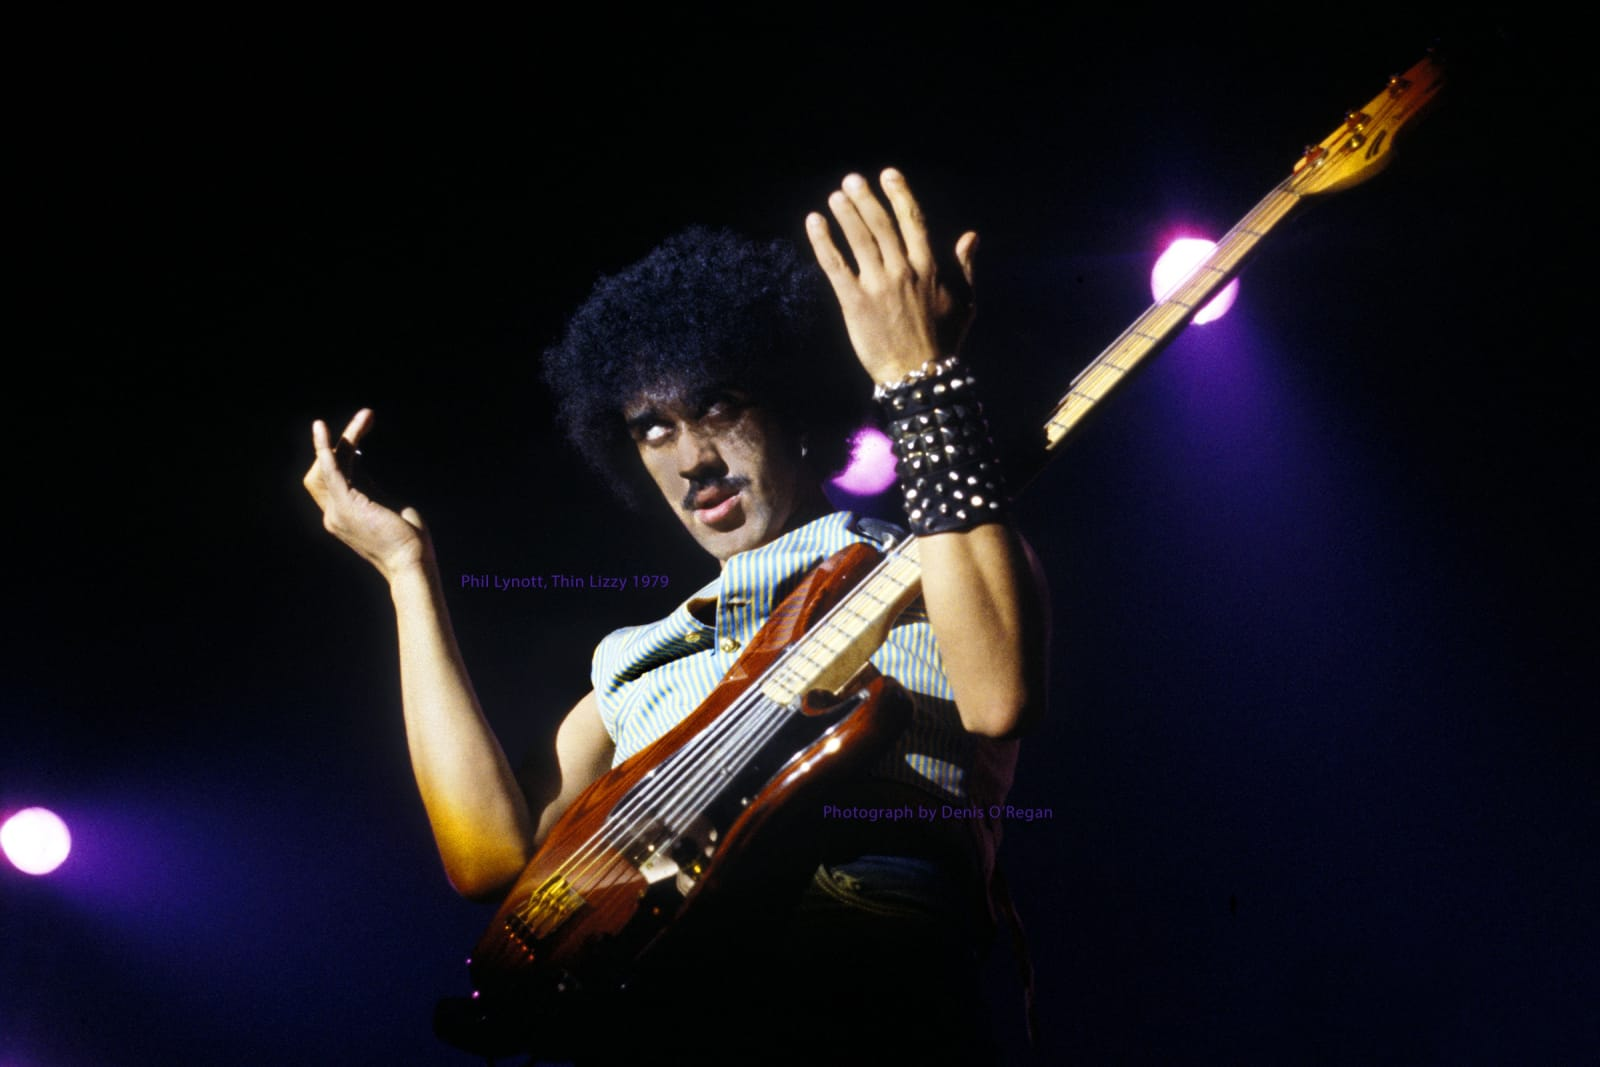 THIN LIZZY, Phil Lynott Live, 1979